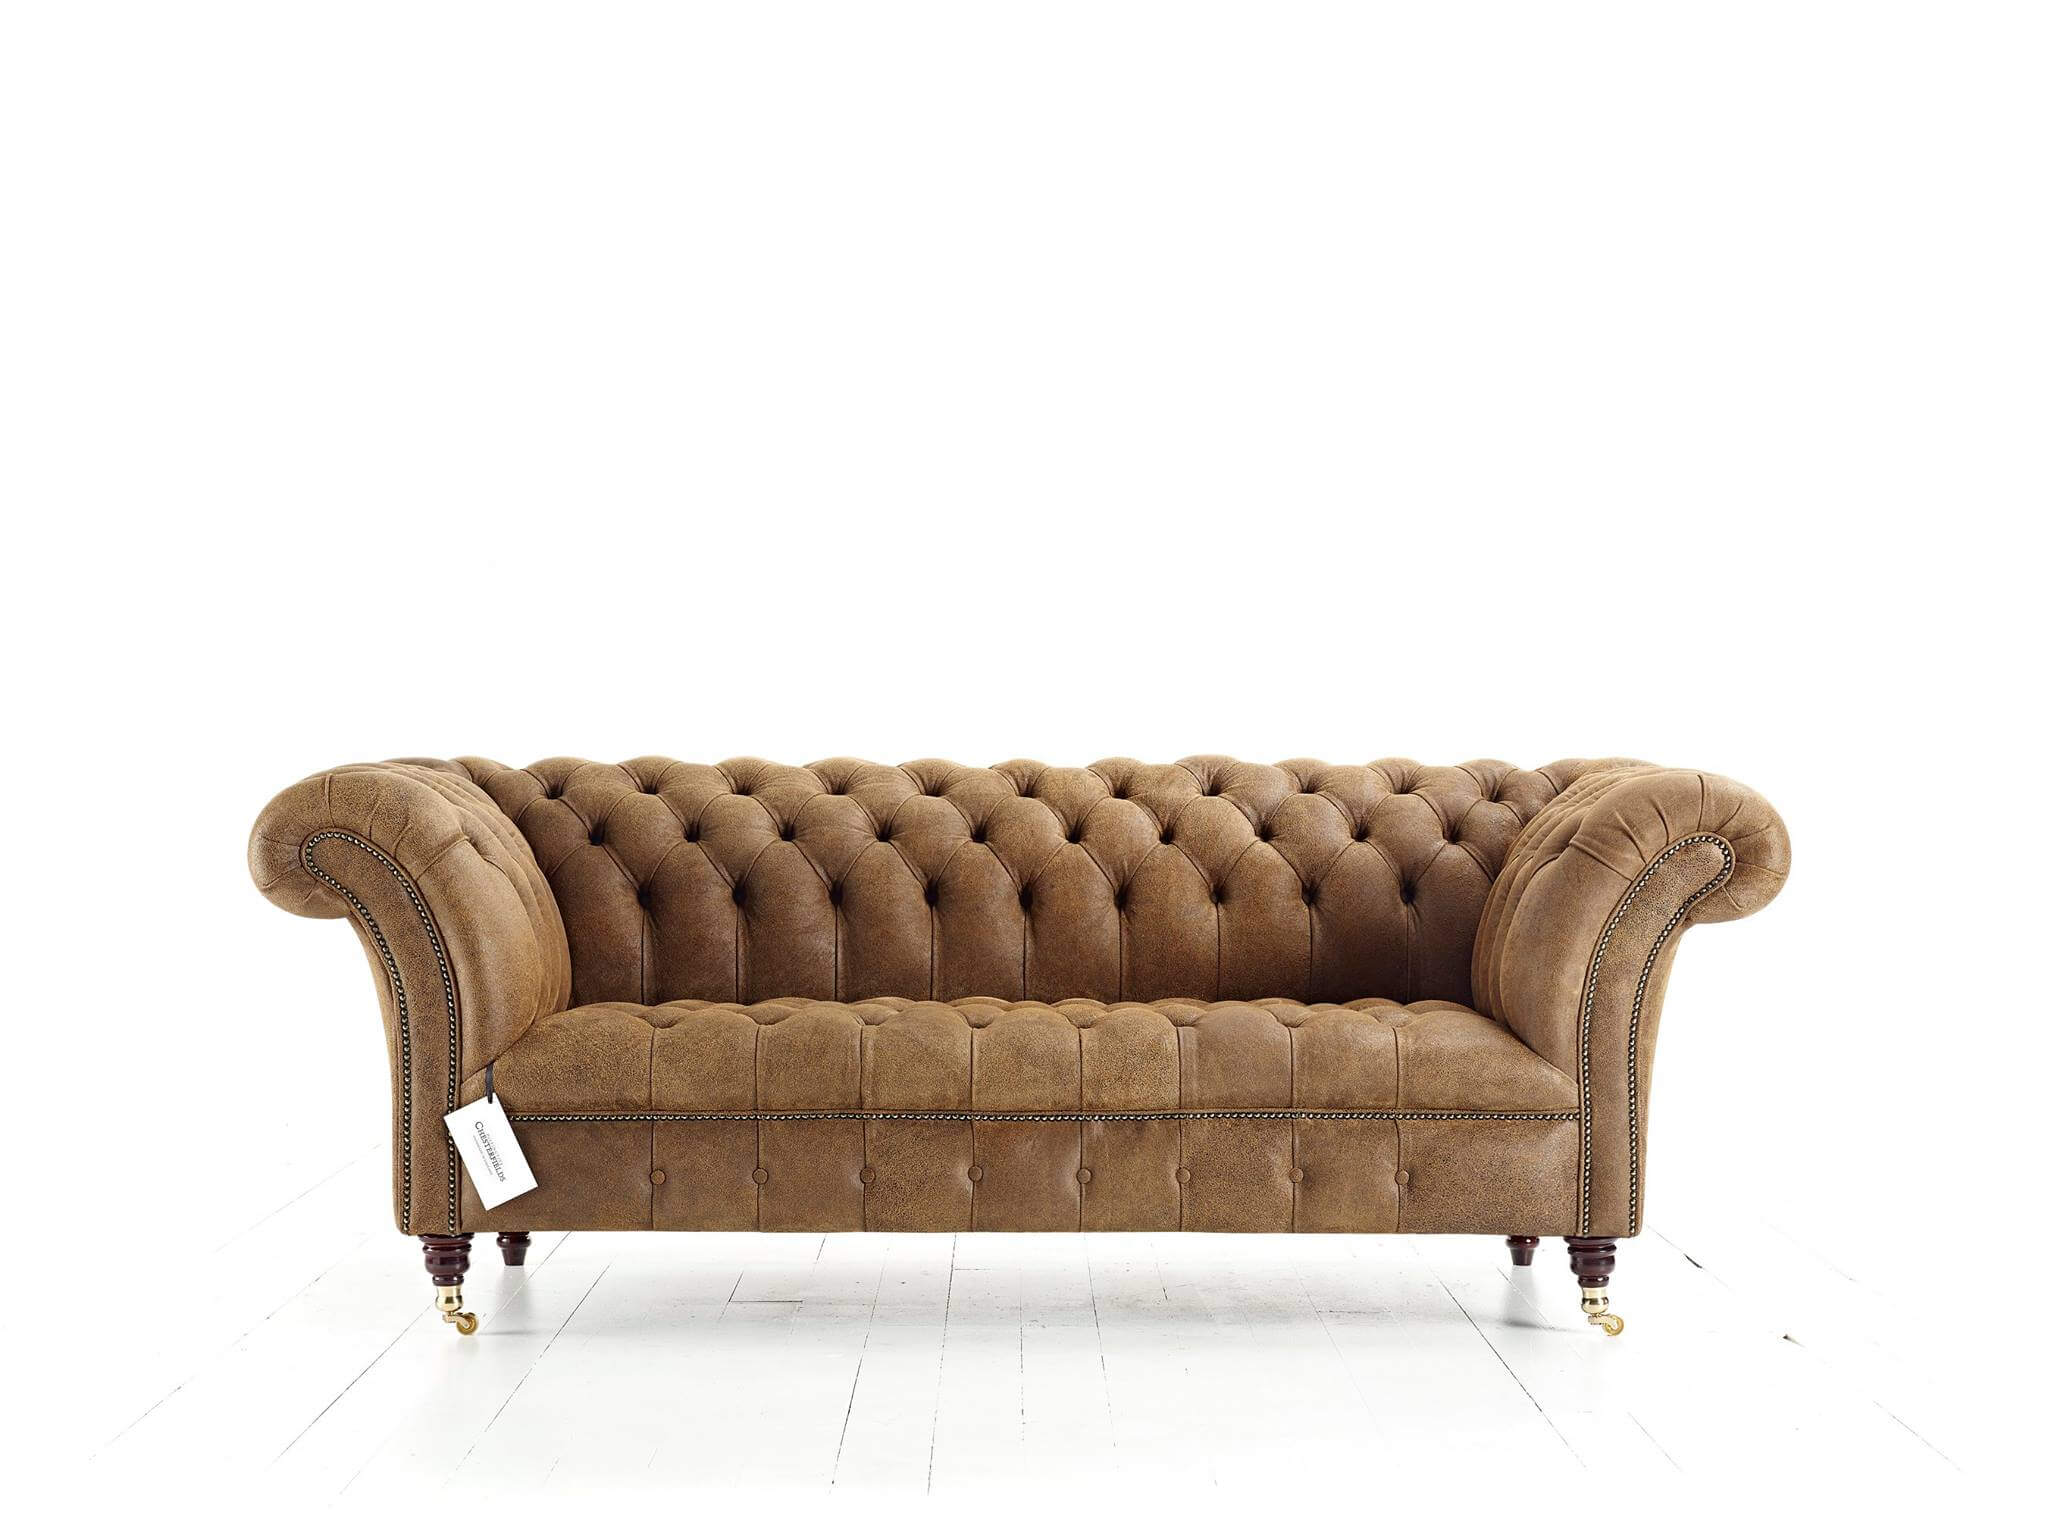 Canapé Chesterfield Blenheim en cuir marron